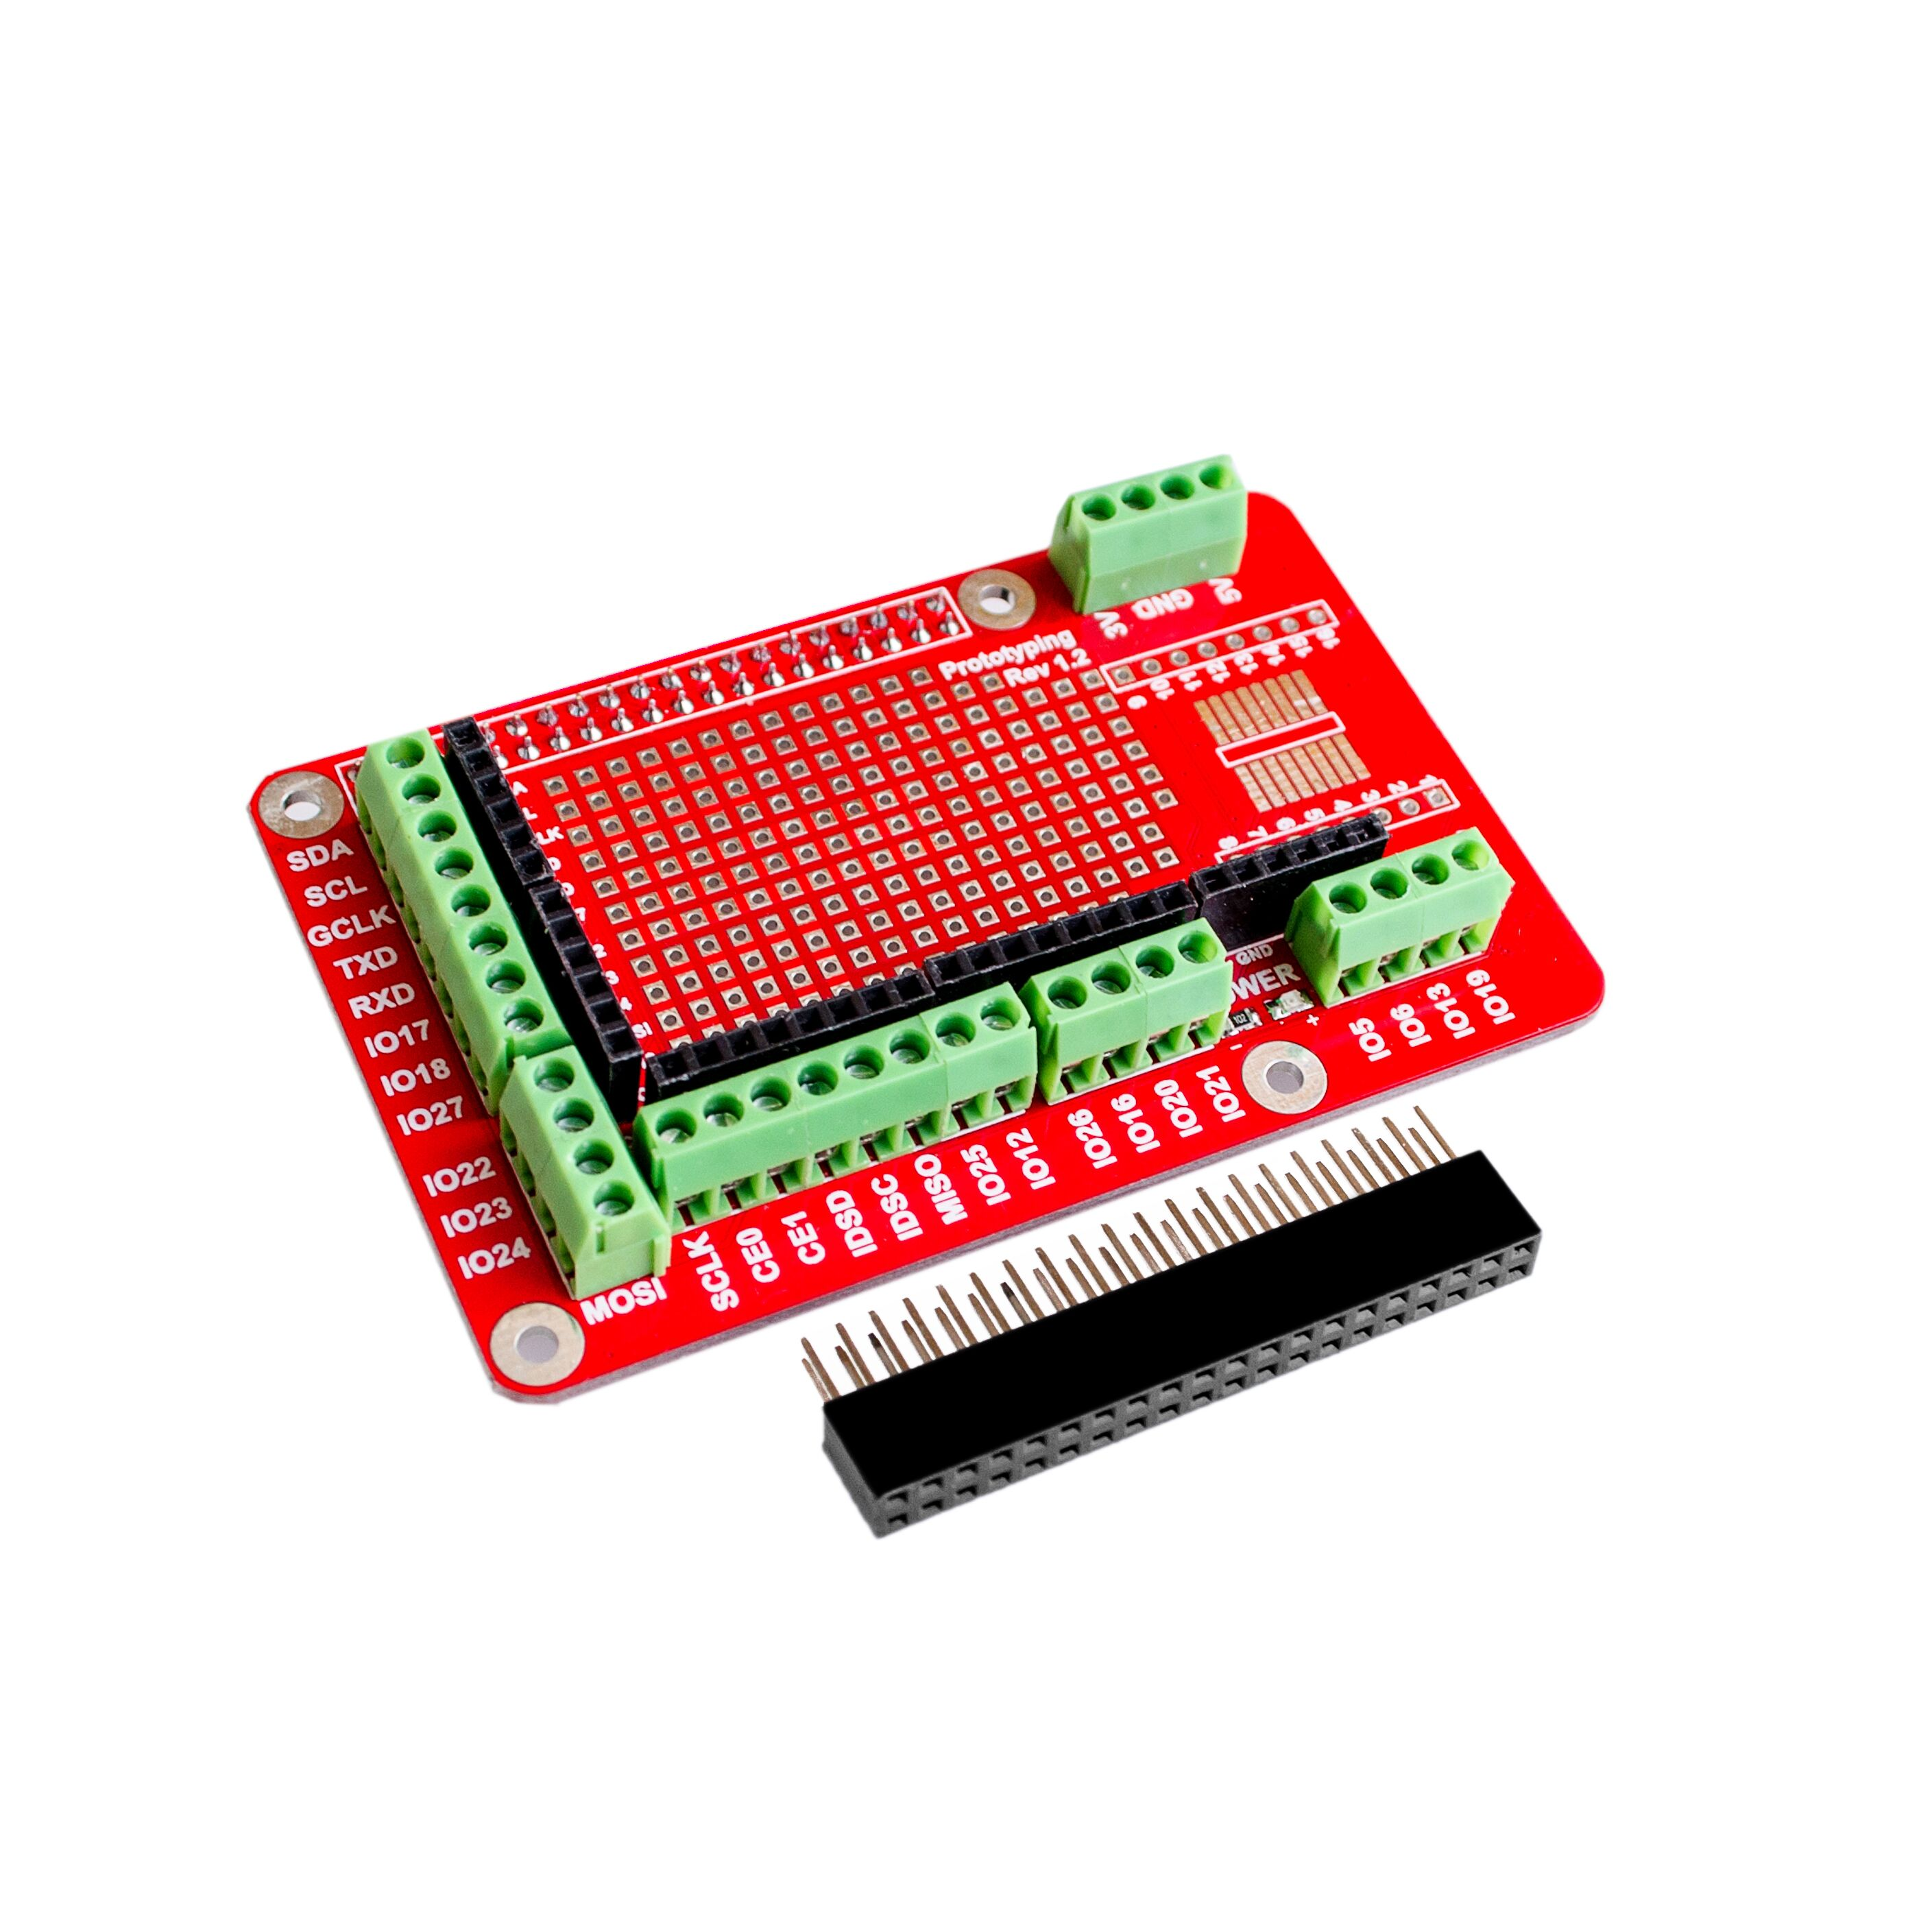 10pcs lot Prototyping Expansion Shield Board For Raspberry Pi 2 board B and Raspberry Pi 3